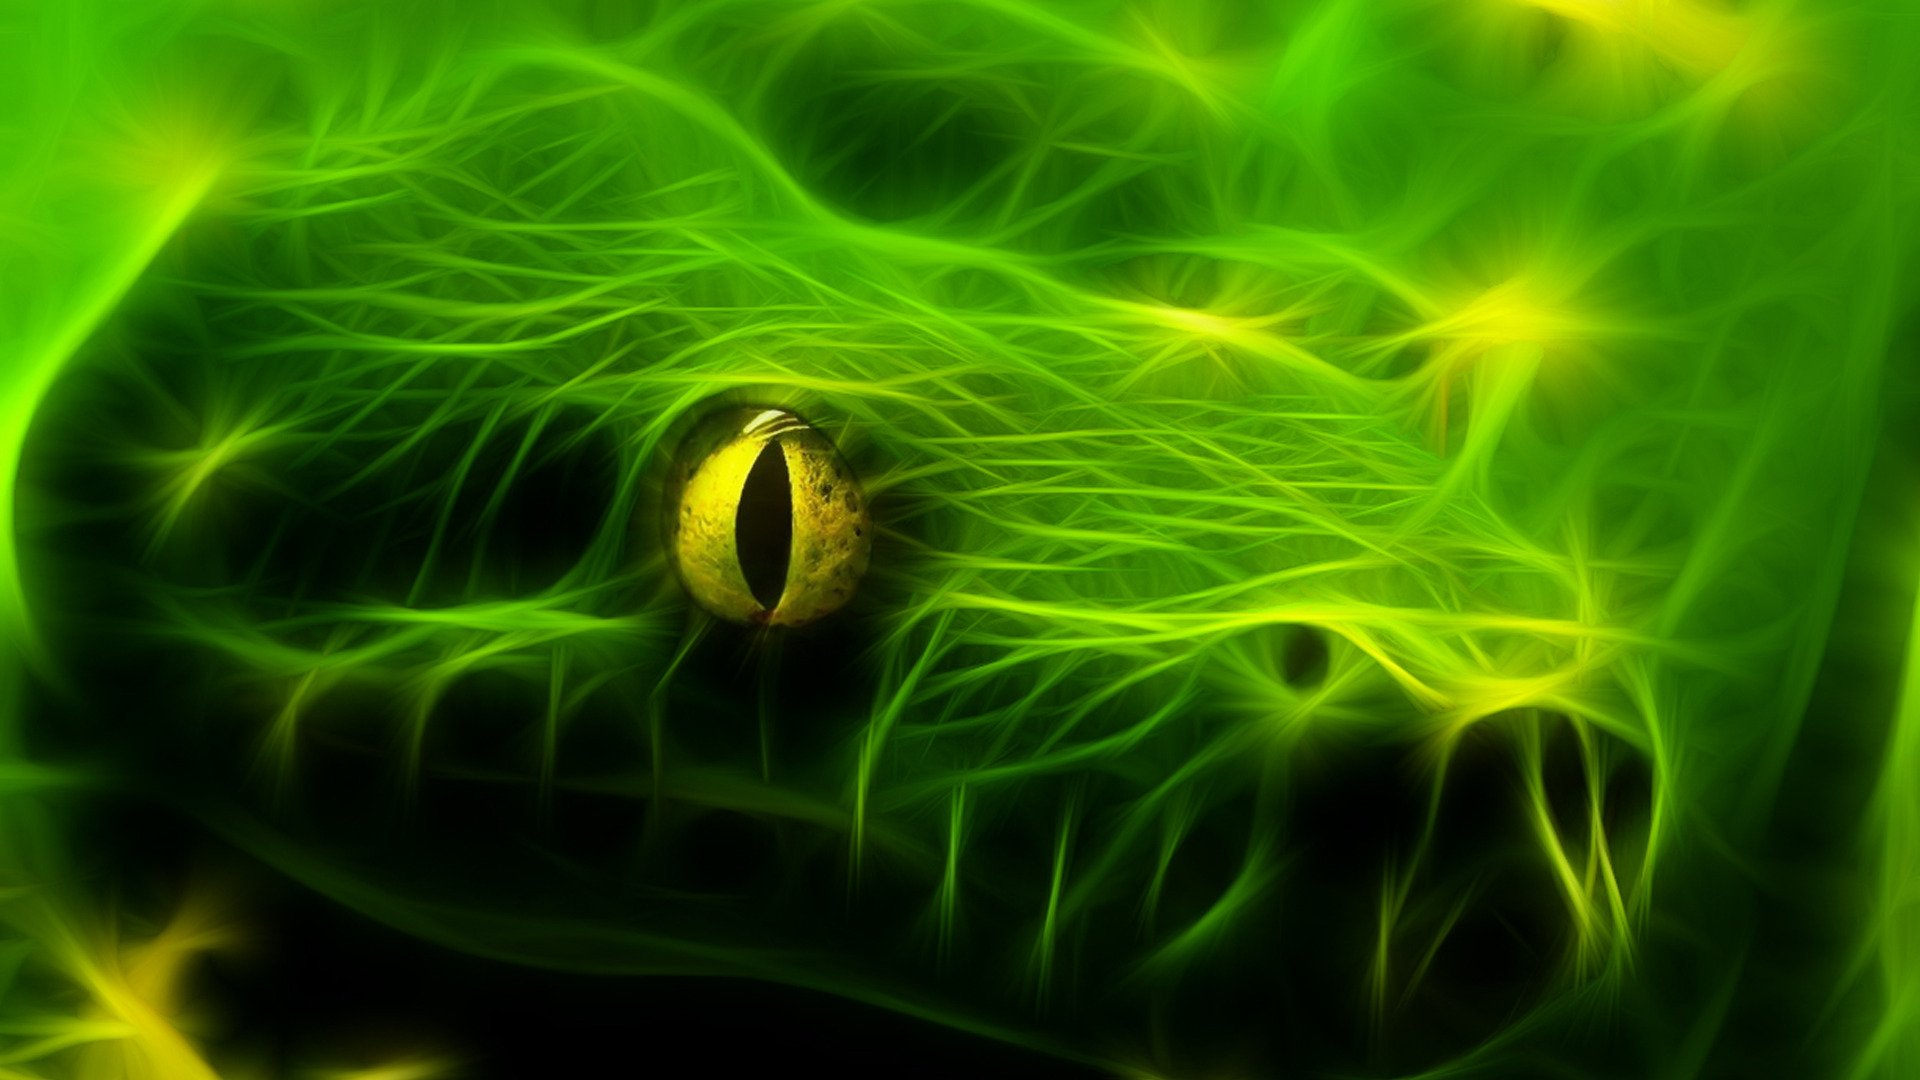 Green Snake Wallpaper  WallpaperSafari